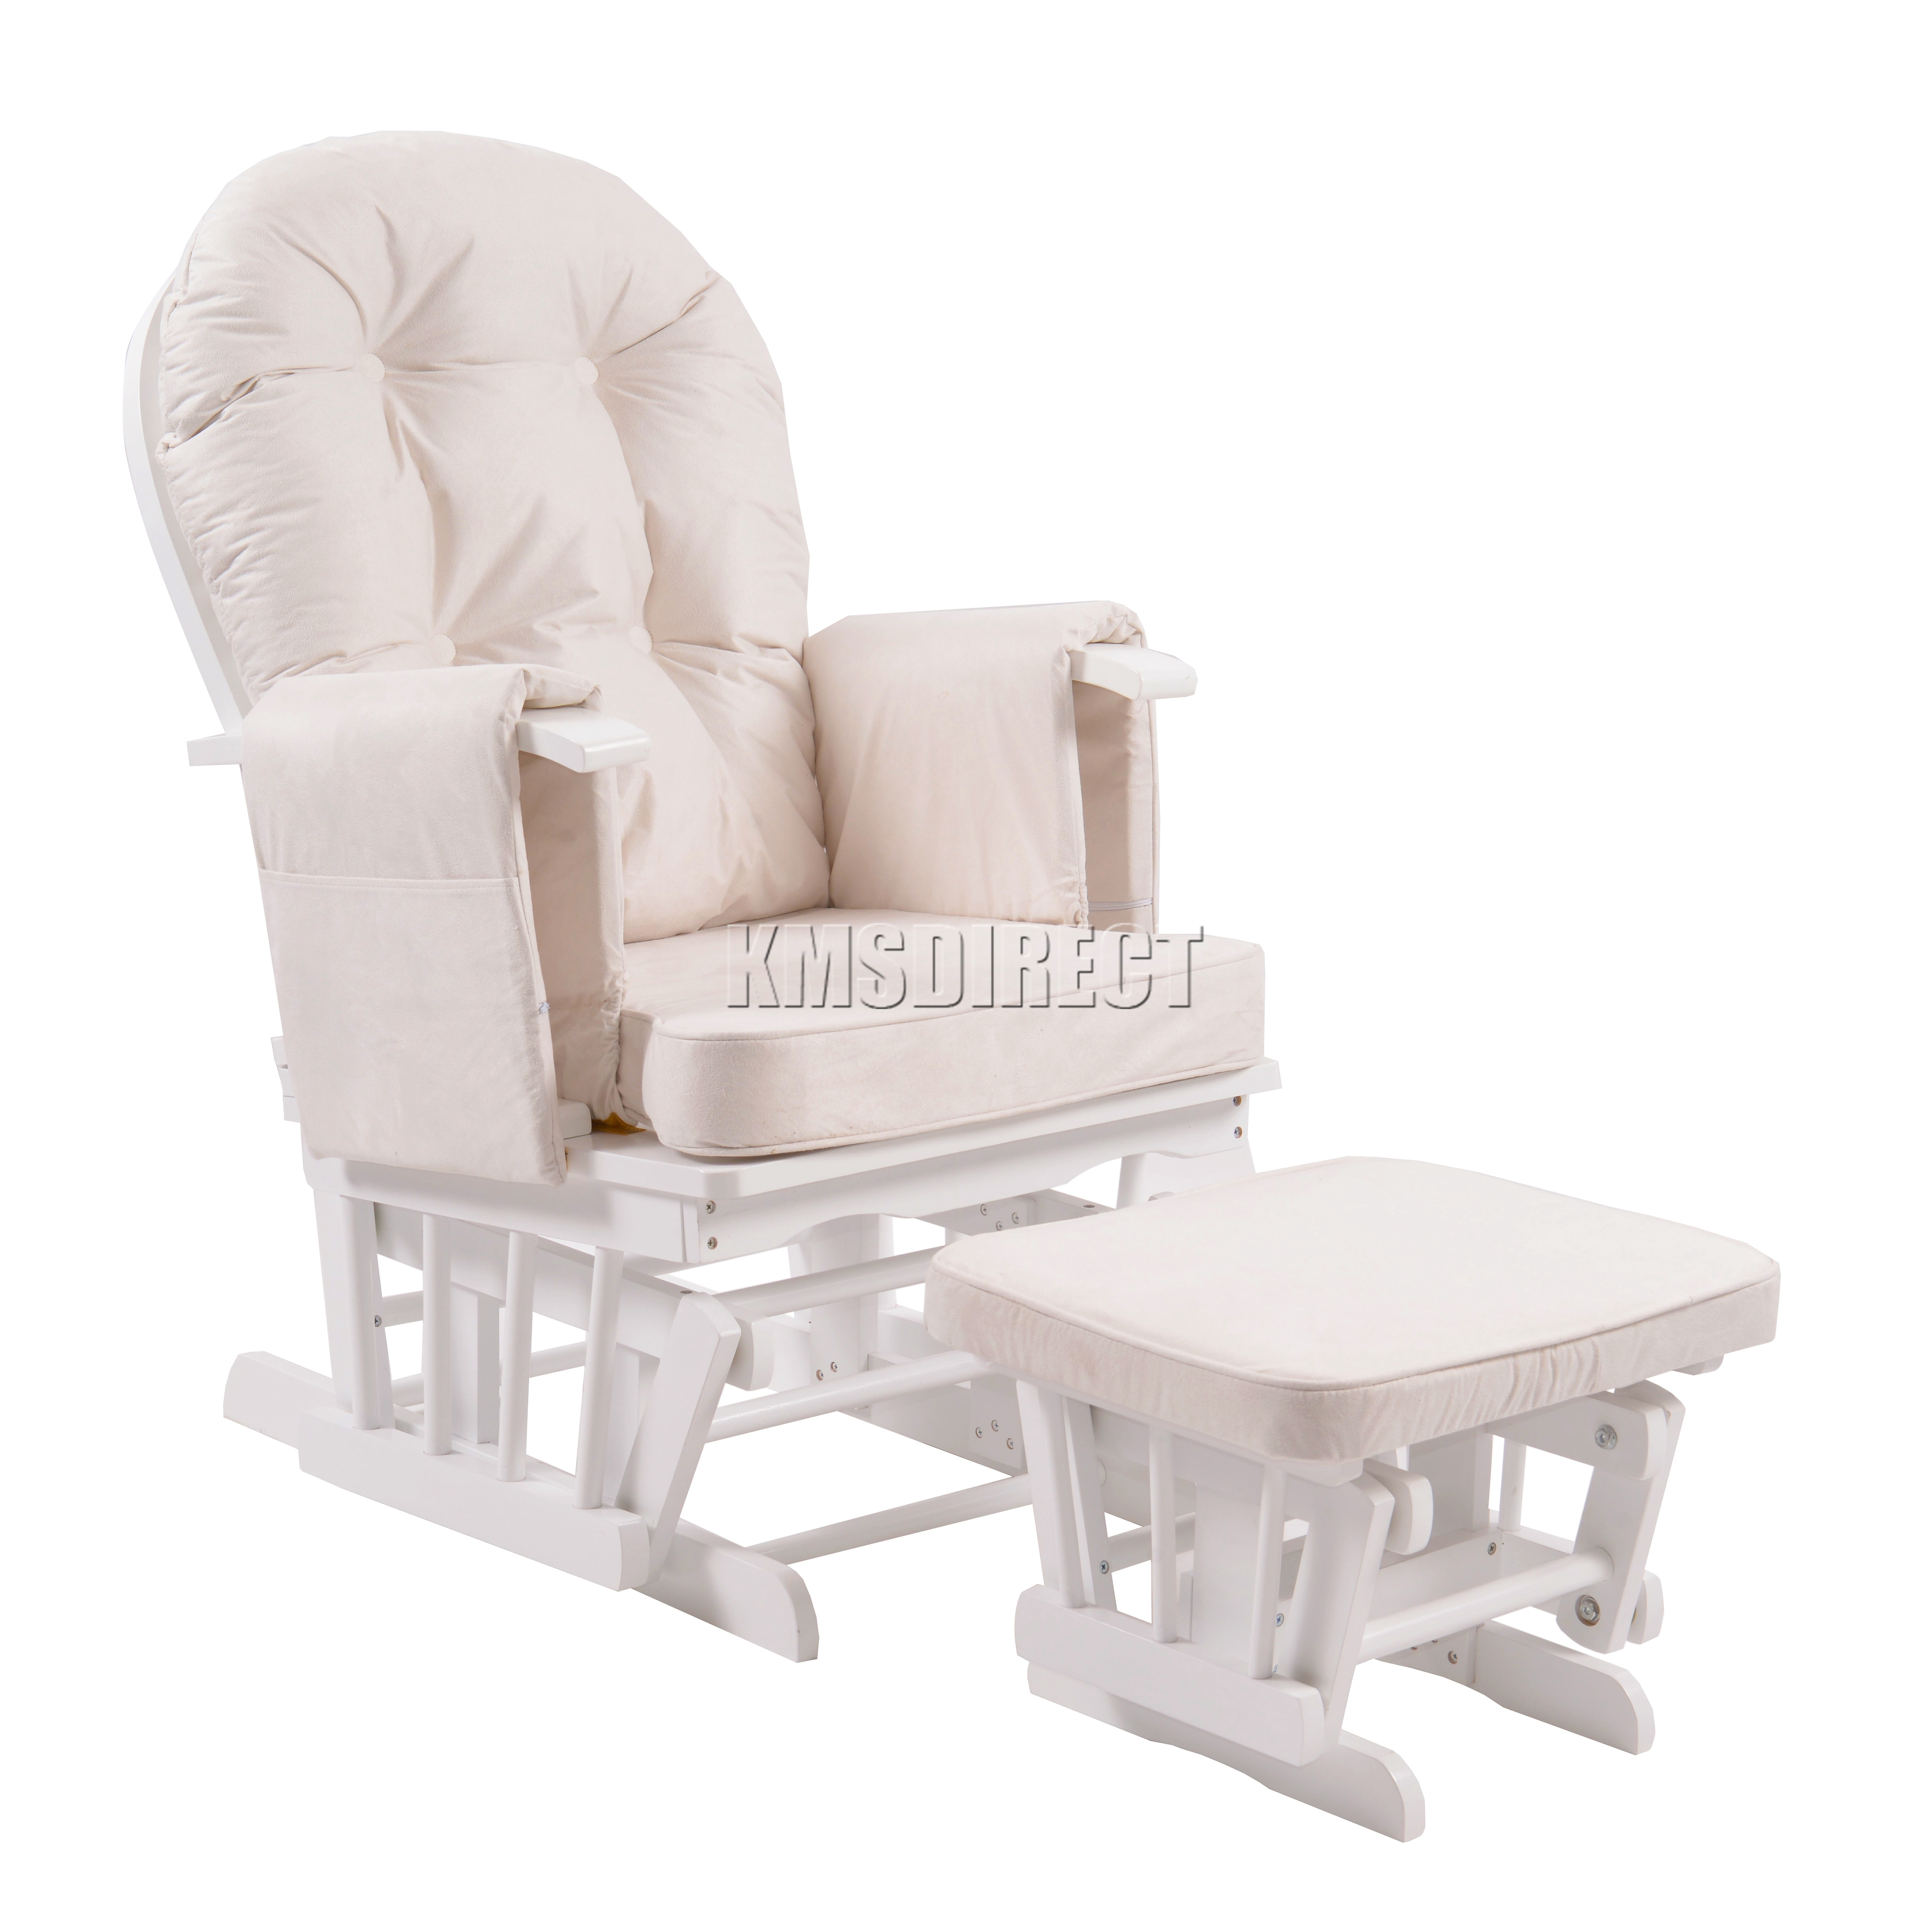 FoxHunter Nursing Glider Maternity Rocking Chair With Stool White